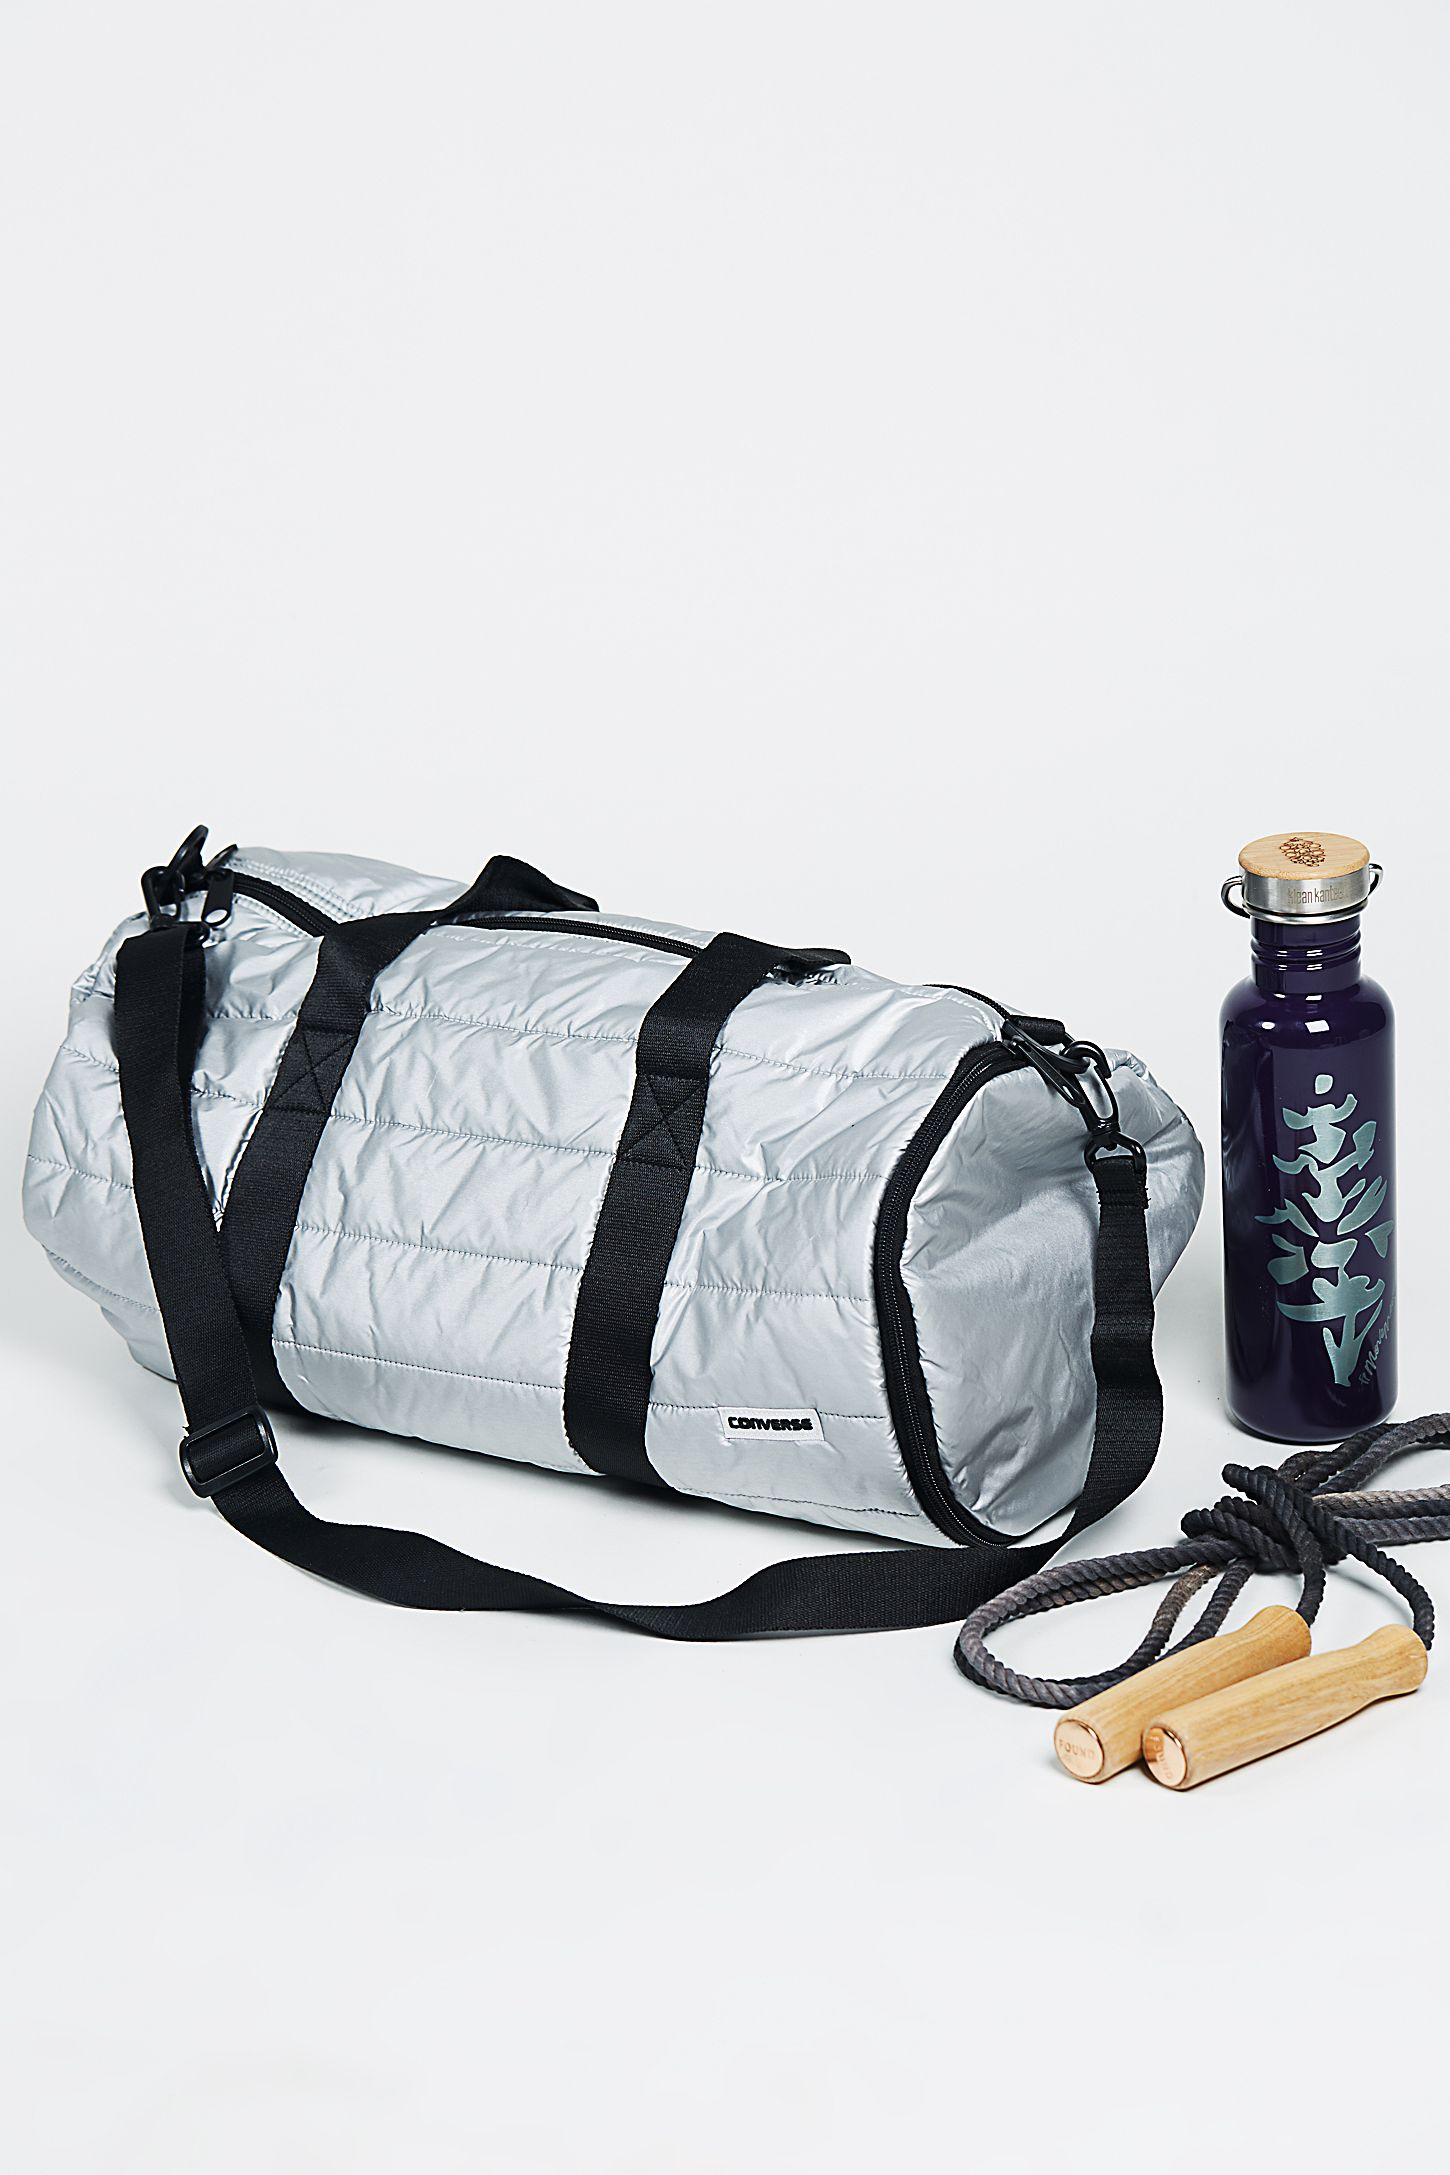 Converse Packable Duffel  824a3811e7280